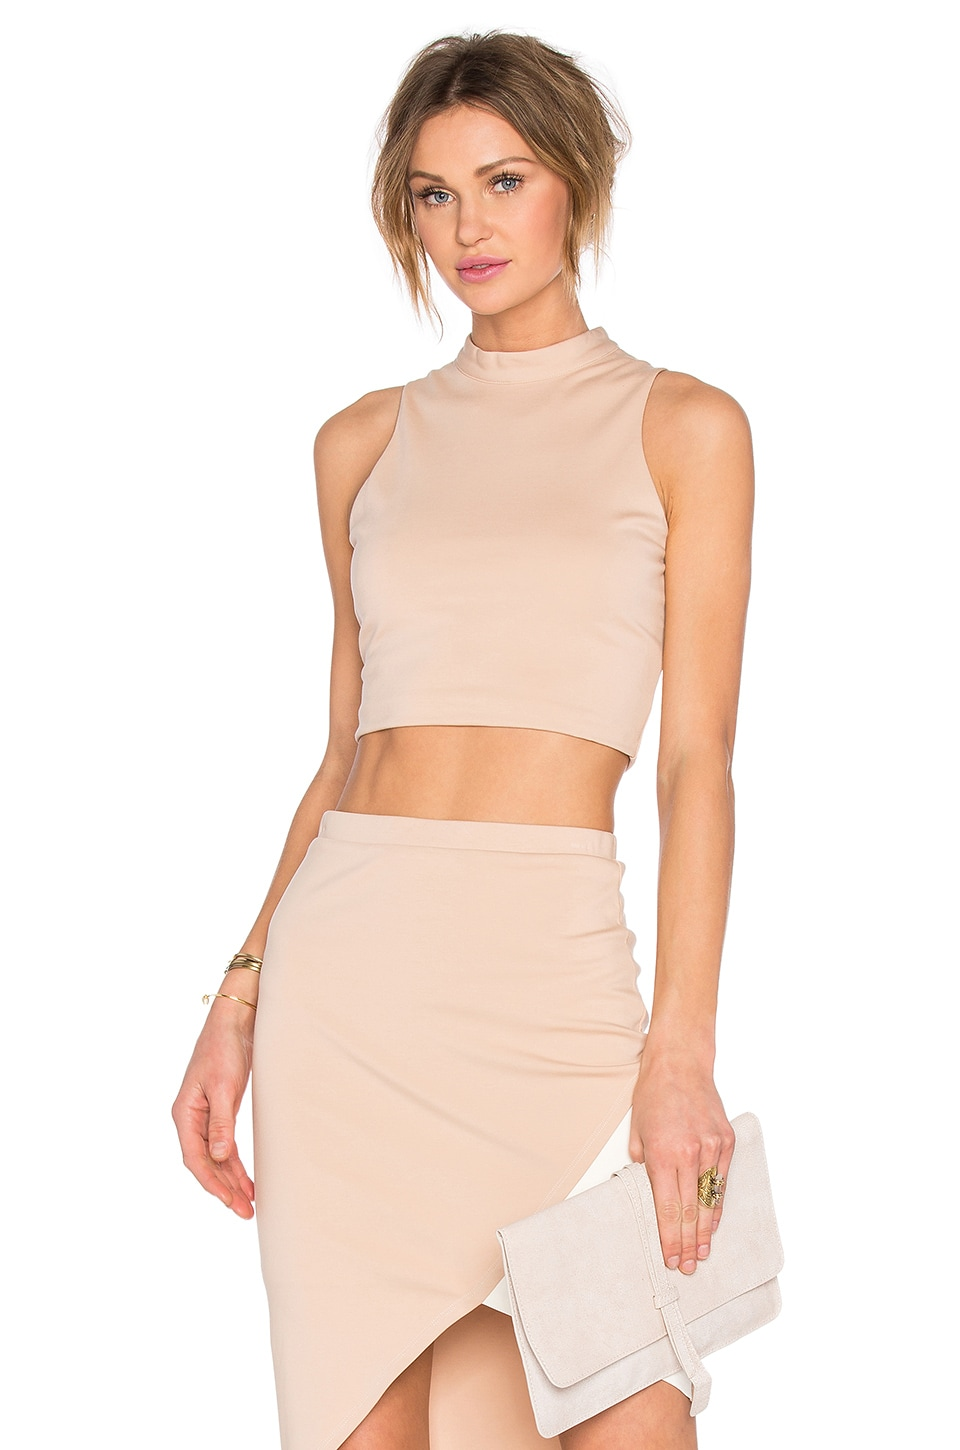 Lovers + Friends x REVOLVE Mademoiselle Crop Top in Nude